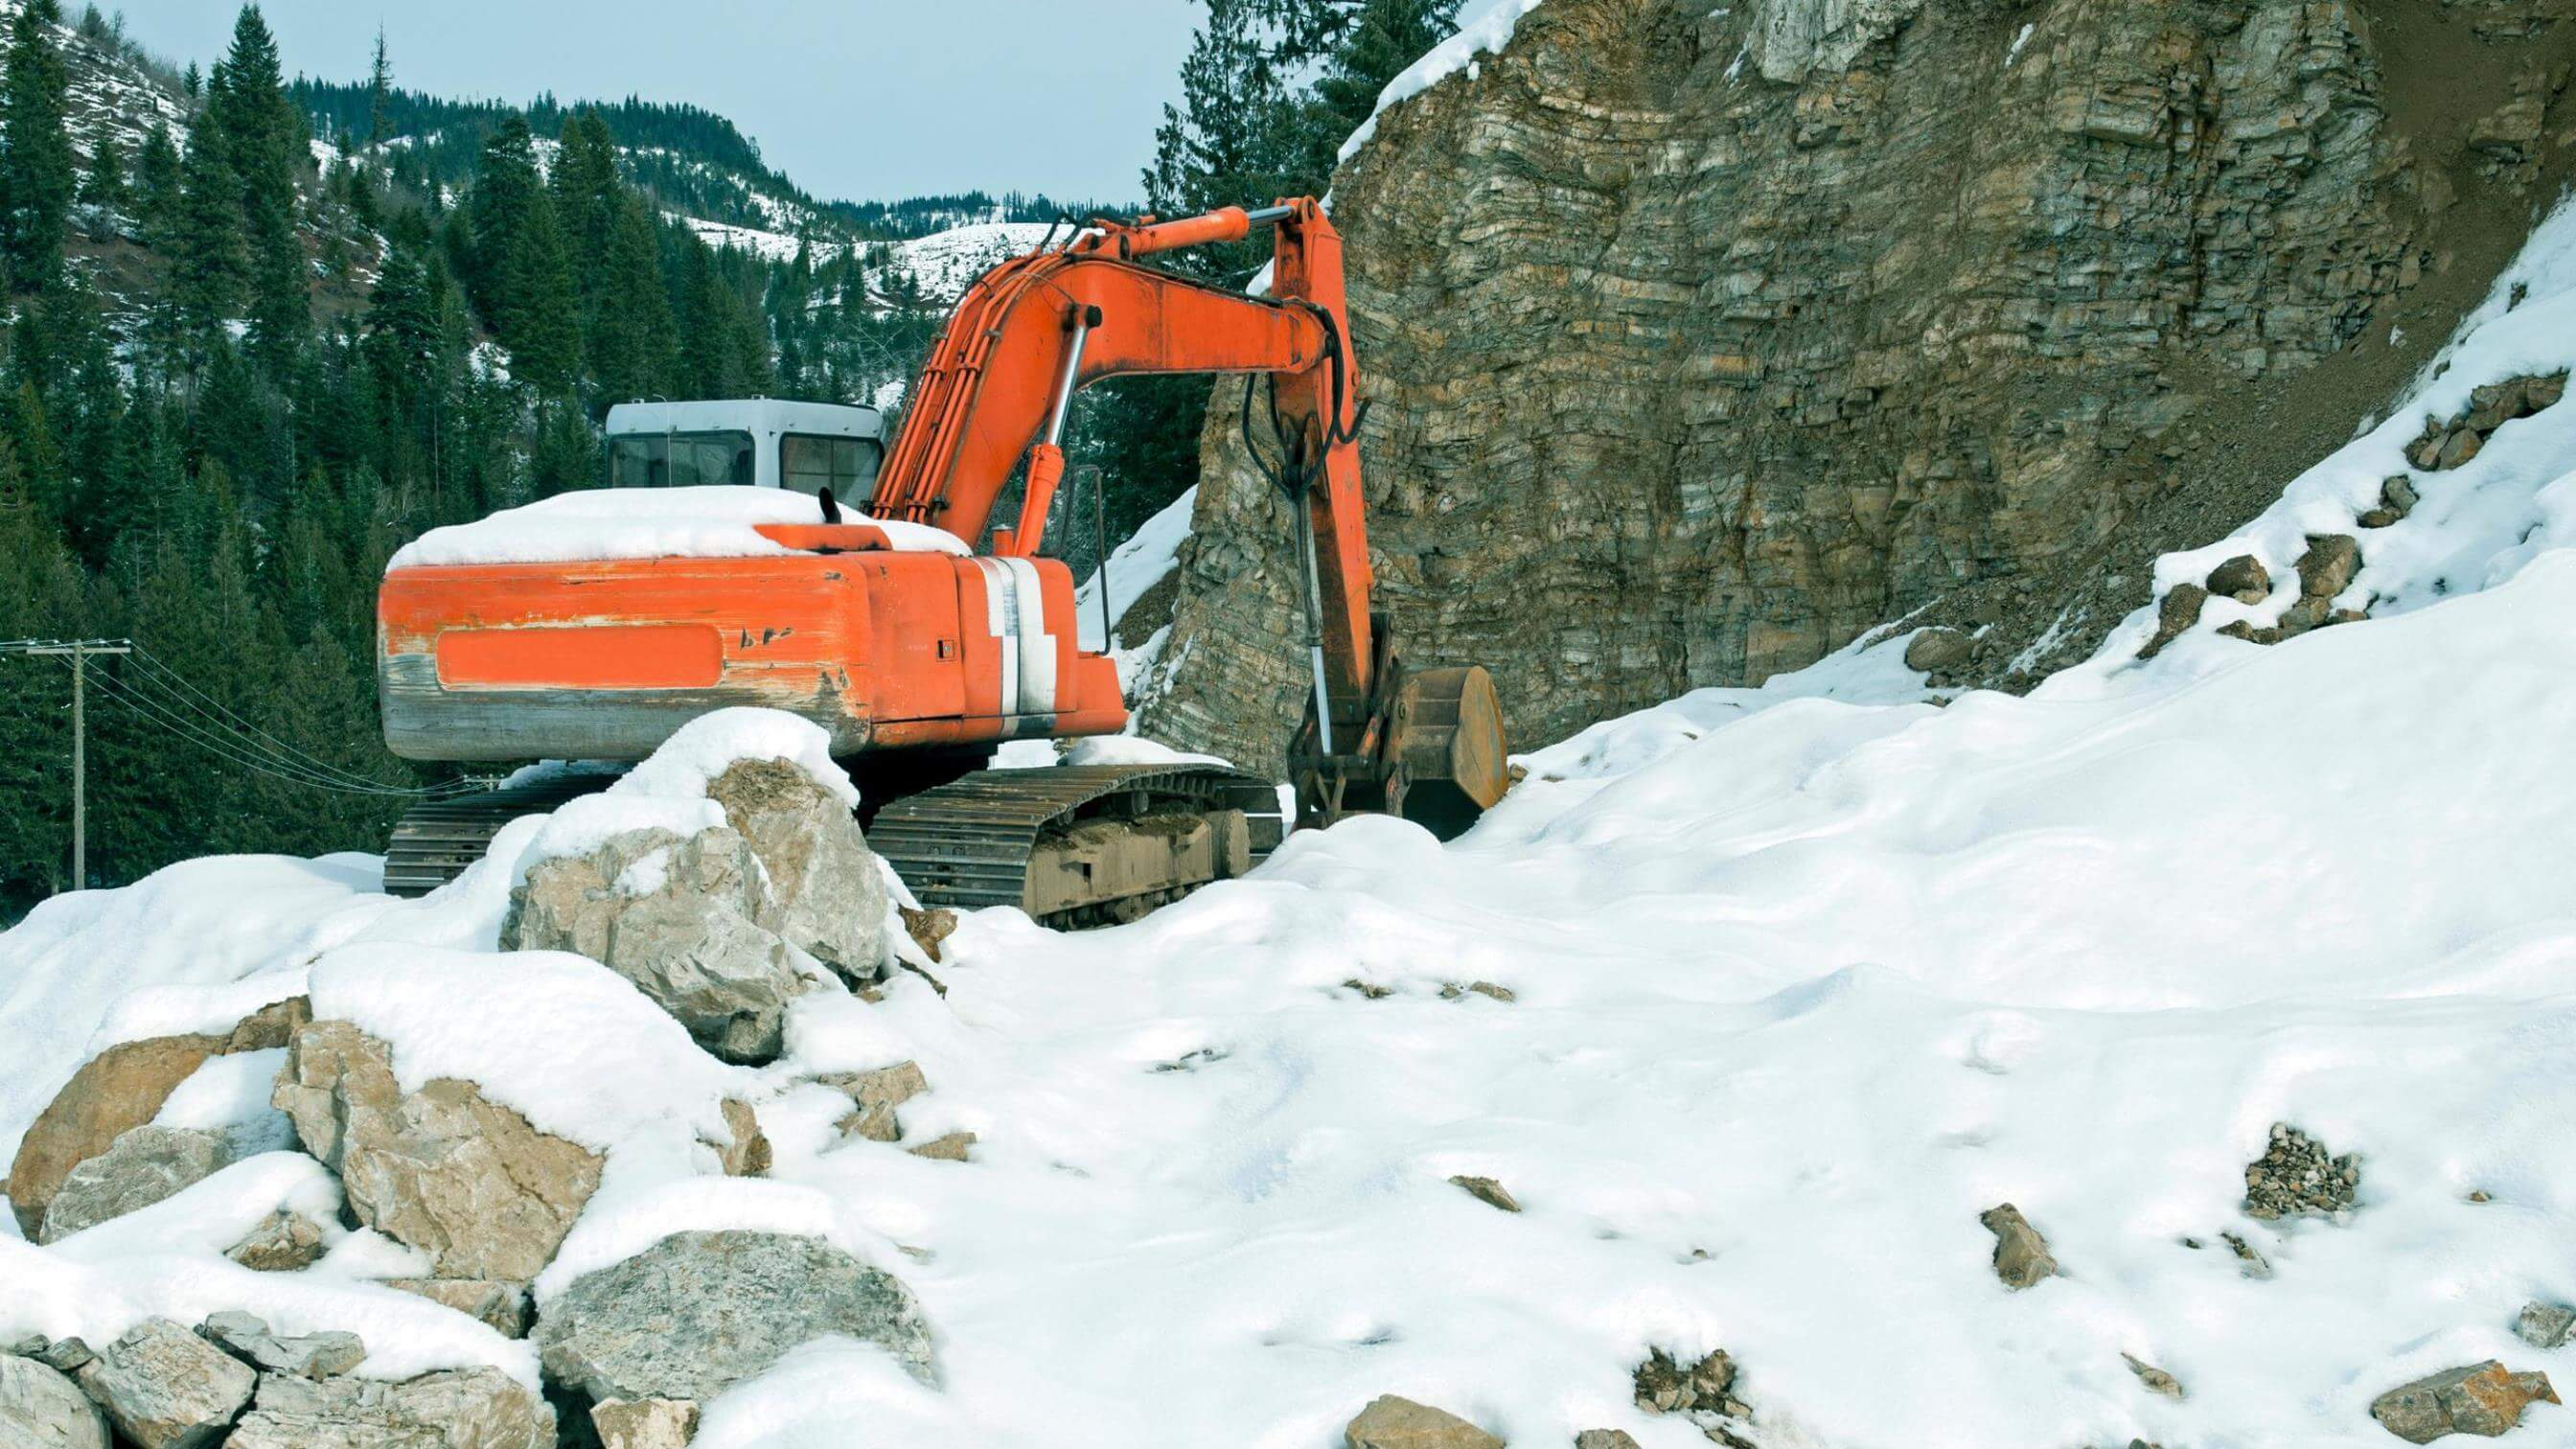 Excavator digging on a snowy mountainside